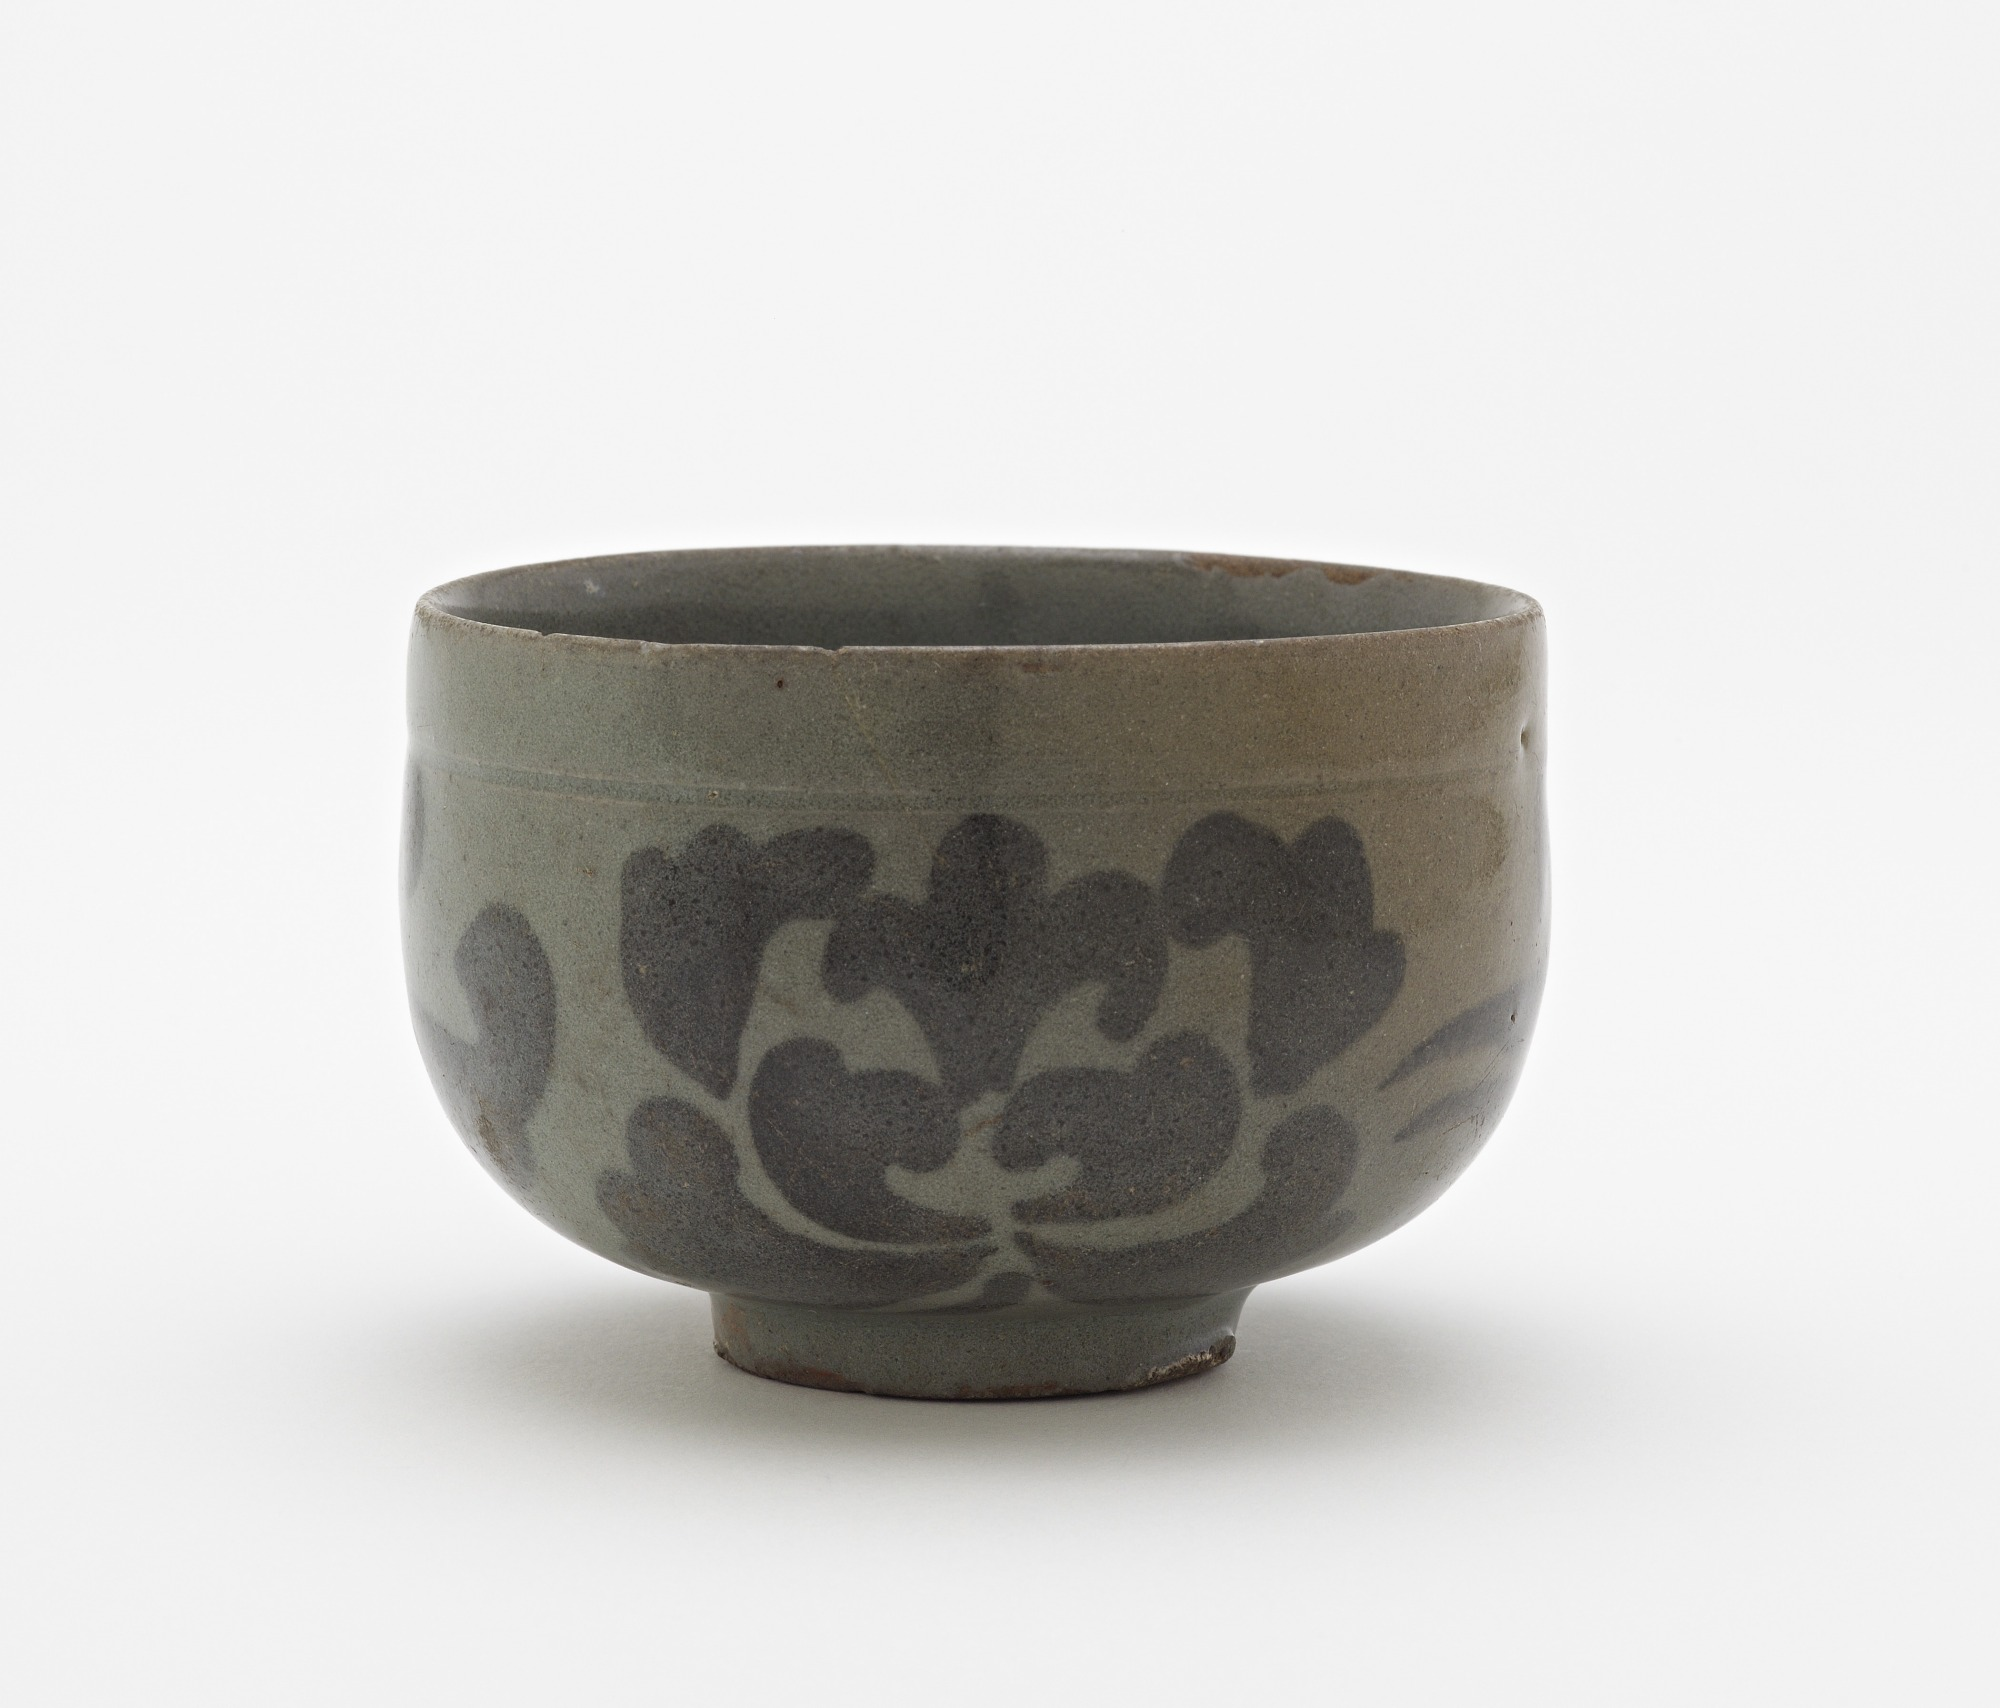 profile: Cup with design of peony blossoms